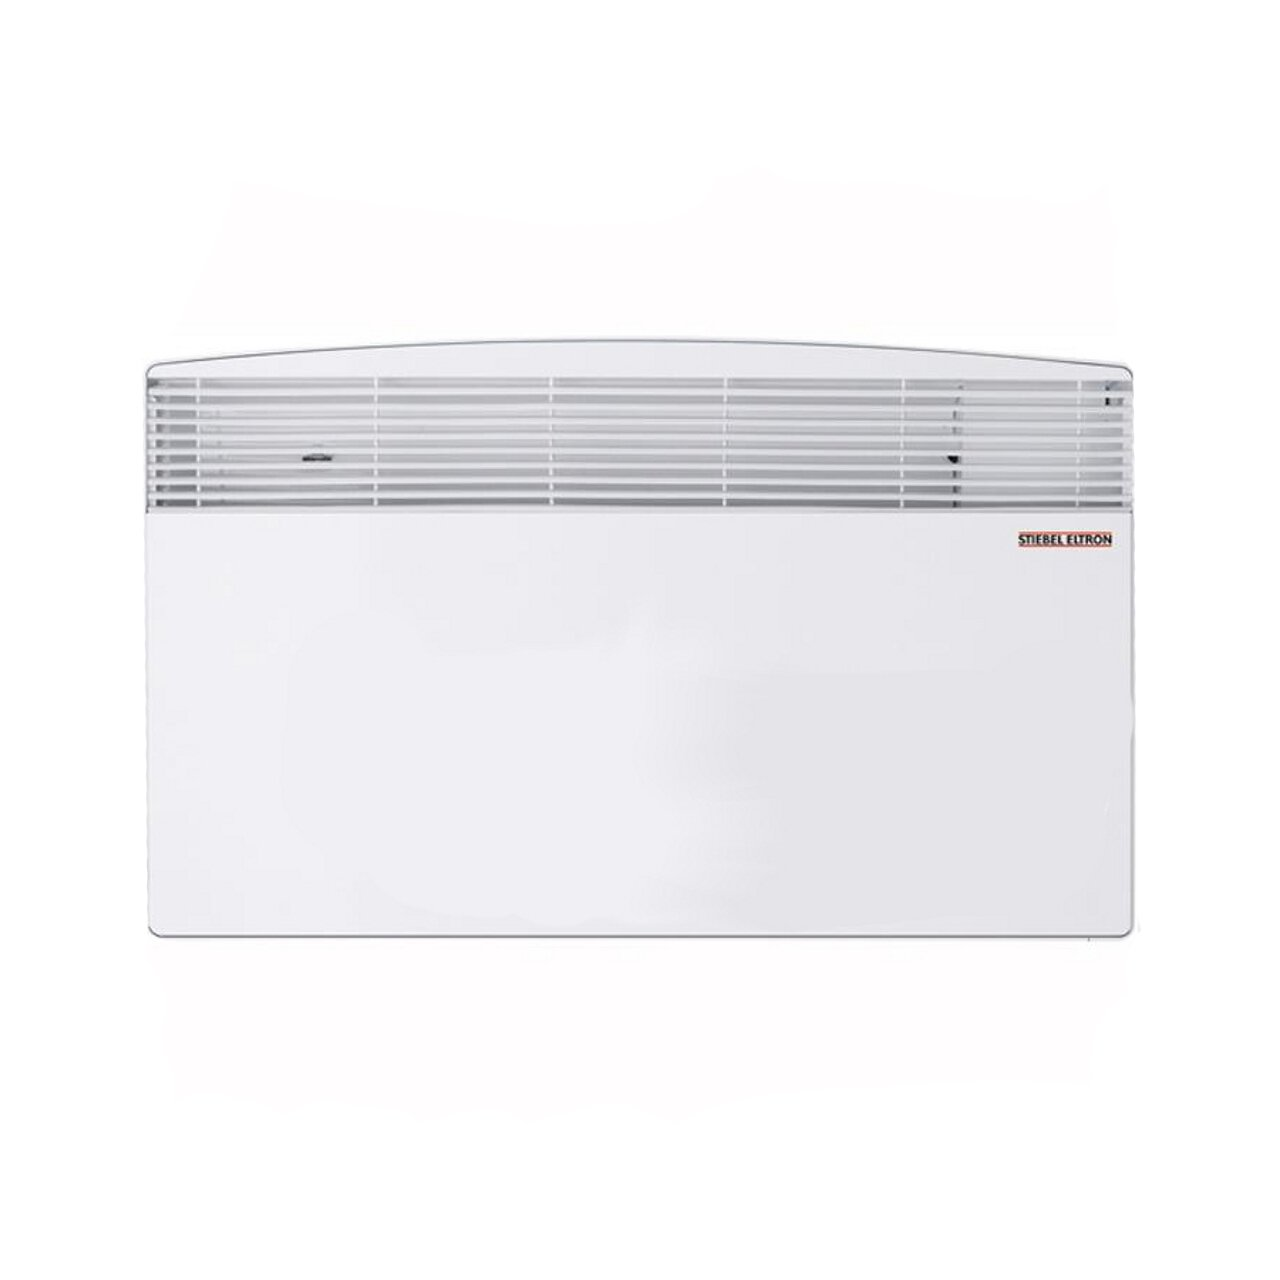 Stiebel Eltron Cns200e Wall Mounted Convection Heater 240 208v 20 Wiring Multiple Heaters Kw